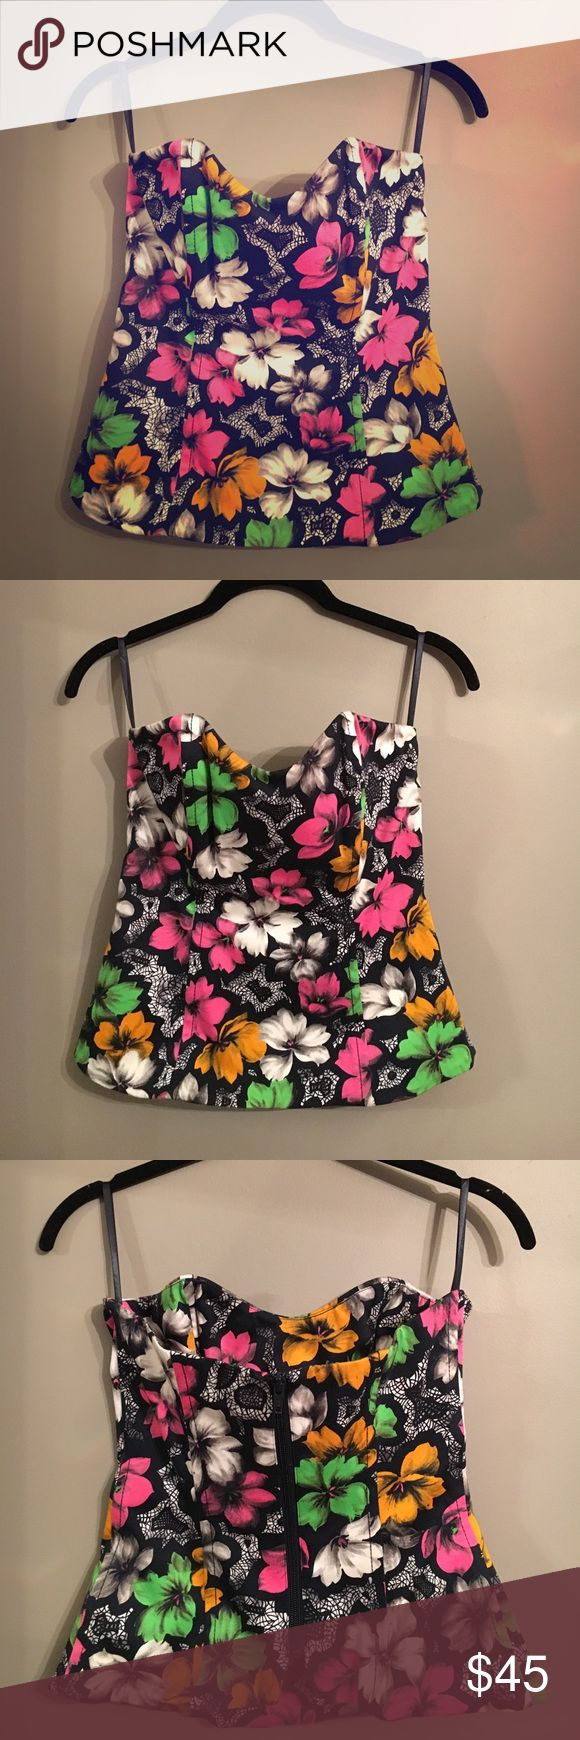 French Connection Floral Bustier Top French Connection Floral Bustier Top - Size 6 French Connection Tops